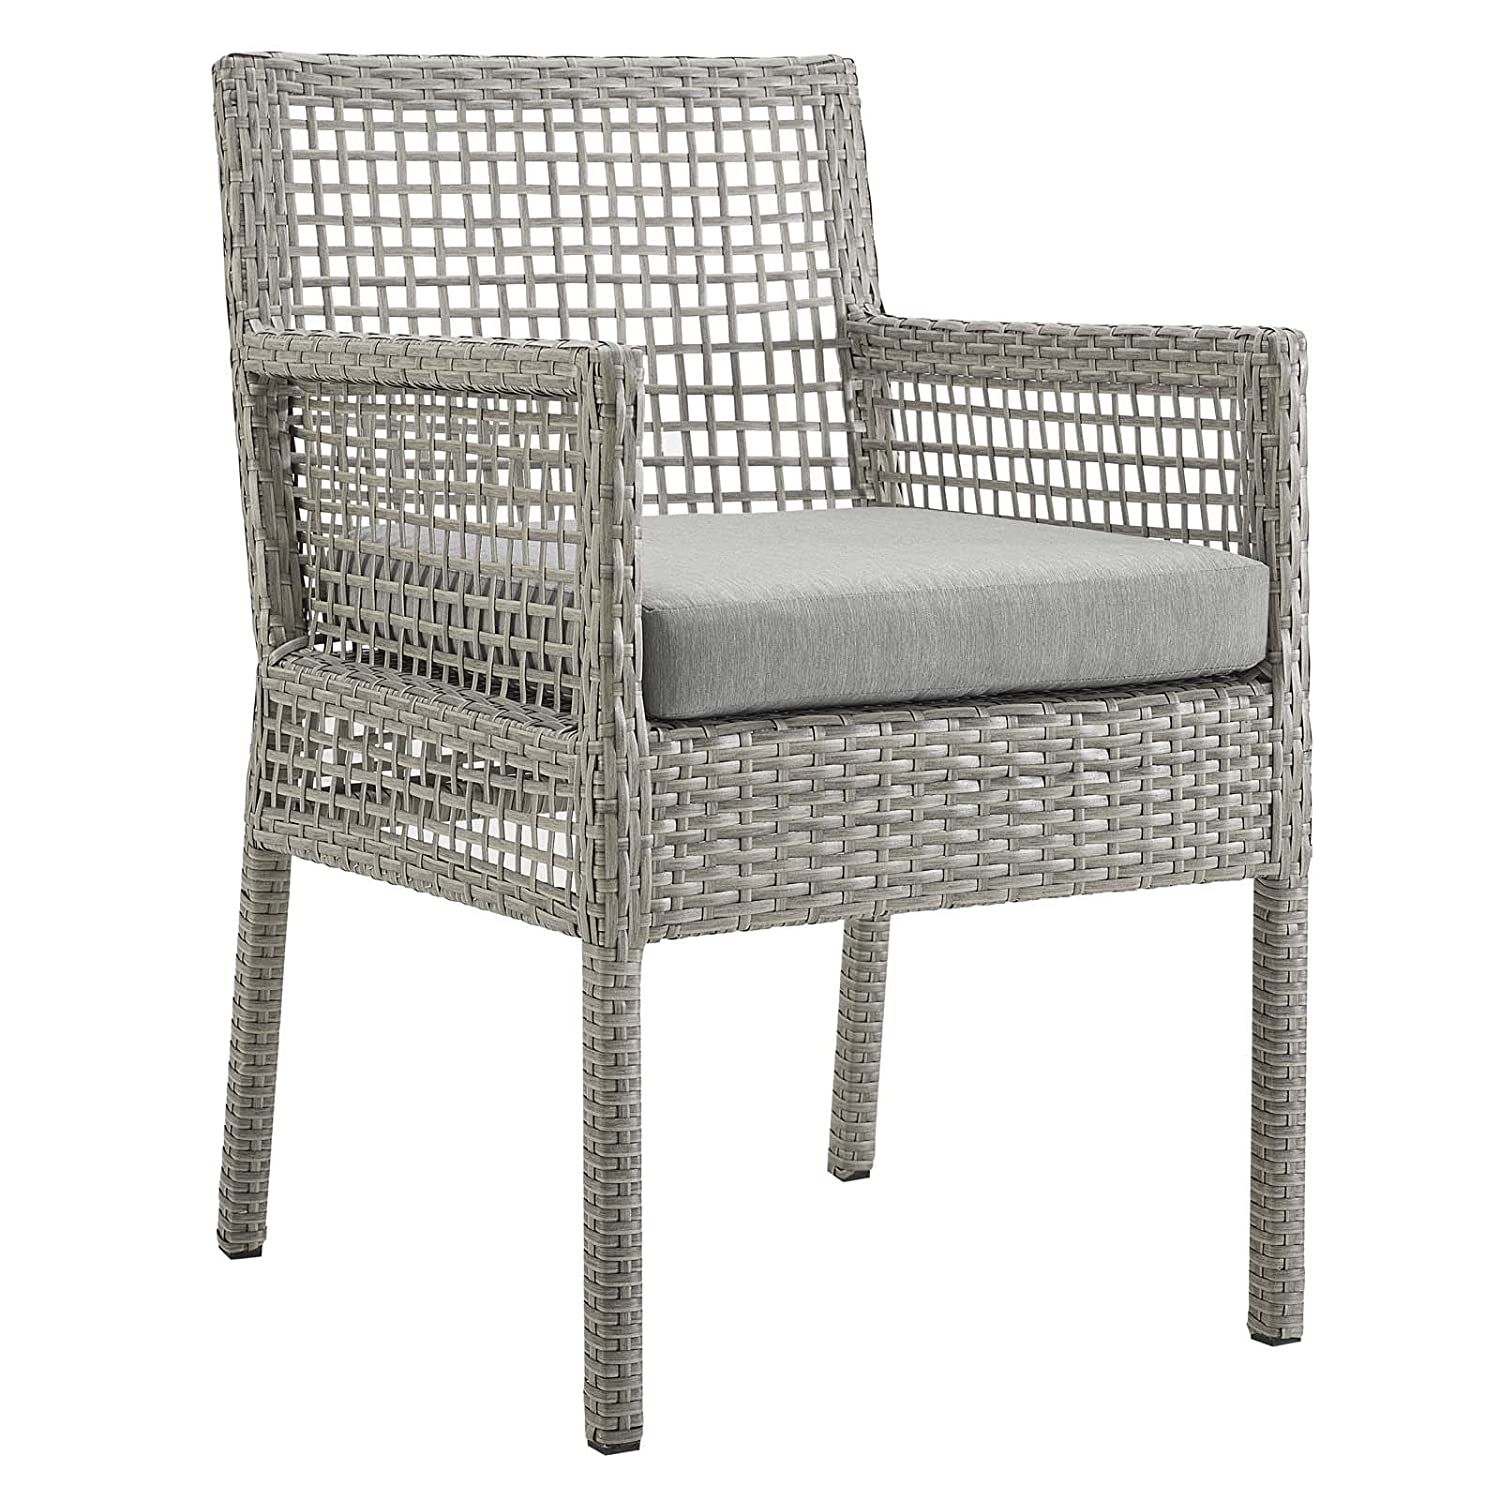 Modway EEI-2920-GRY-GRY Aura Wicker Rattan Outdoor Patio, Dining Armchair, Gray